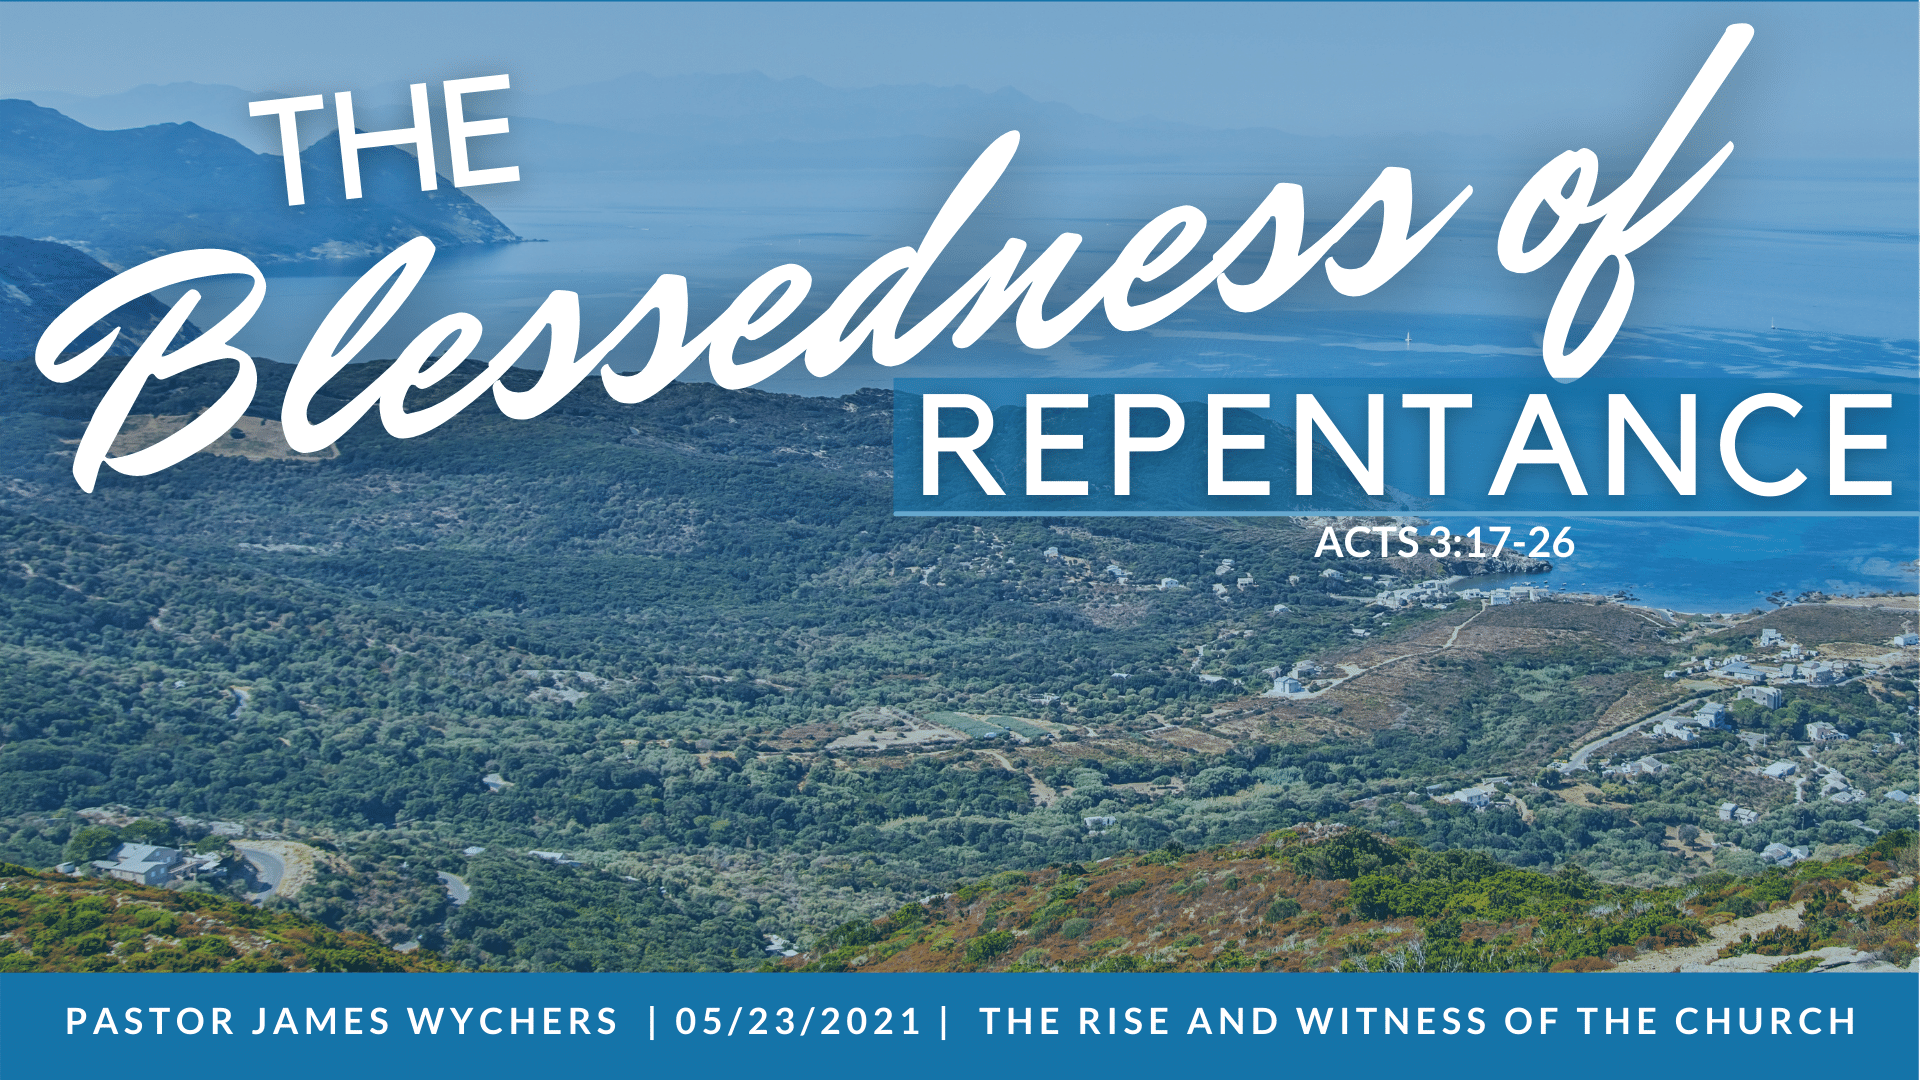 The Blessedness of Repentance_c